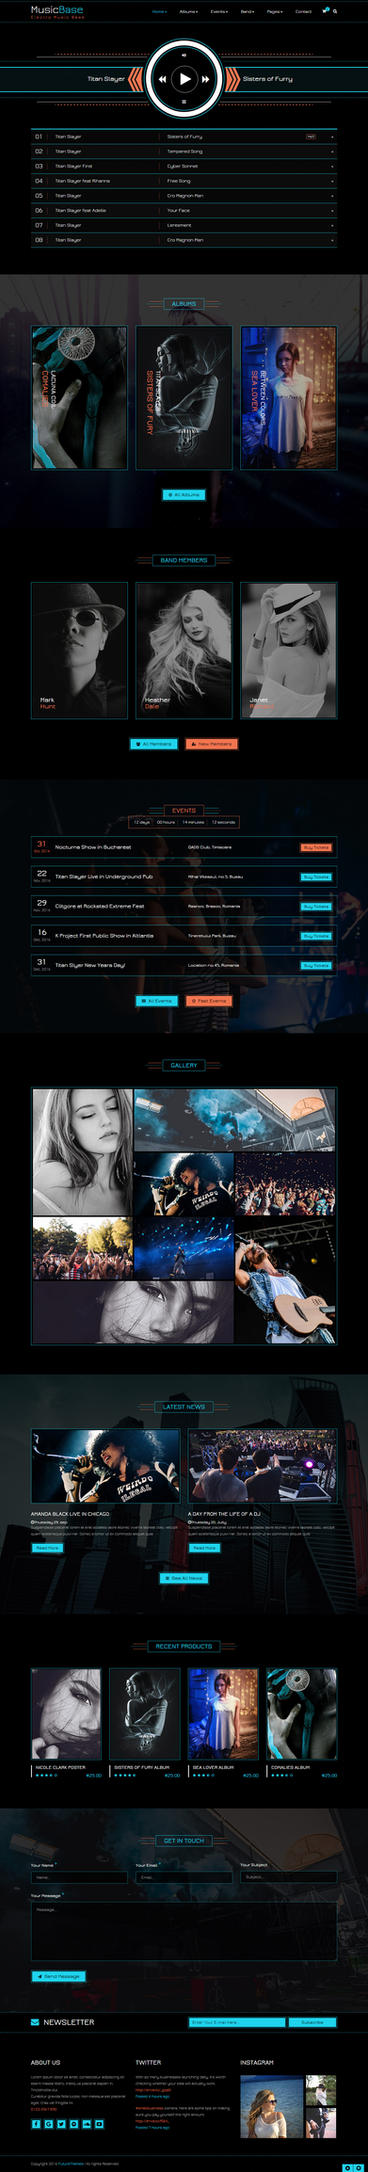 MusicBase (Electro Skin) - HTML Template by future-themes